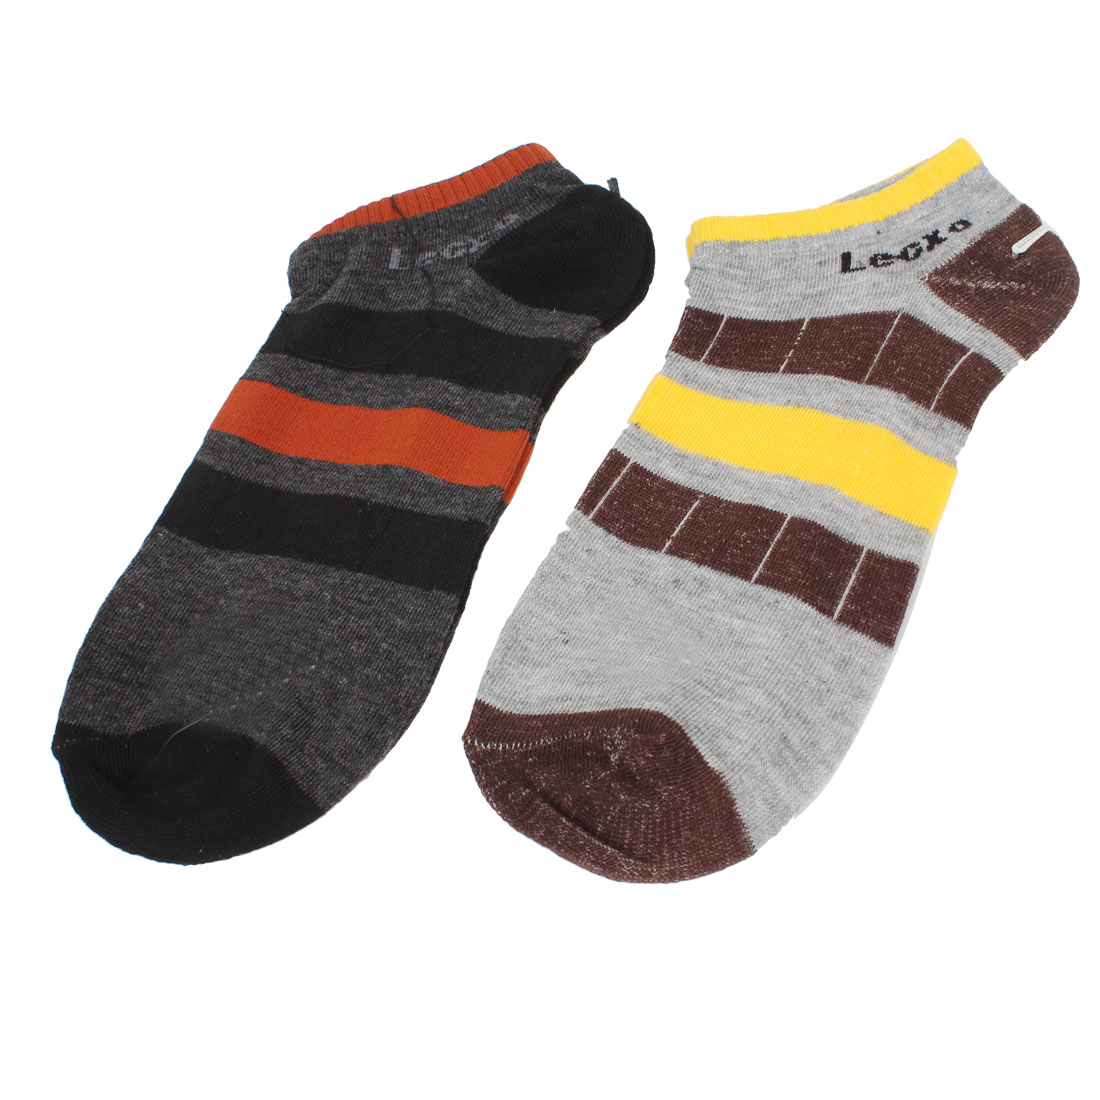 2 Pairs Colord Elastic Cuff Stripes Pattern Sports Ankle Socks for Man